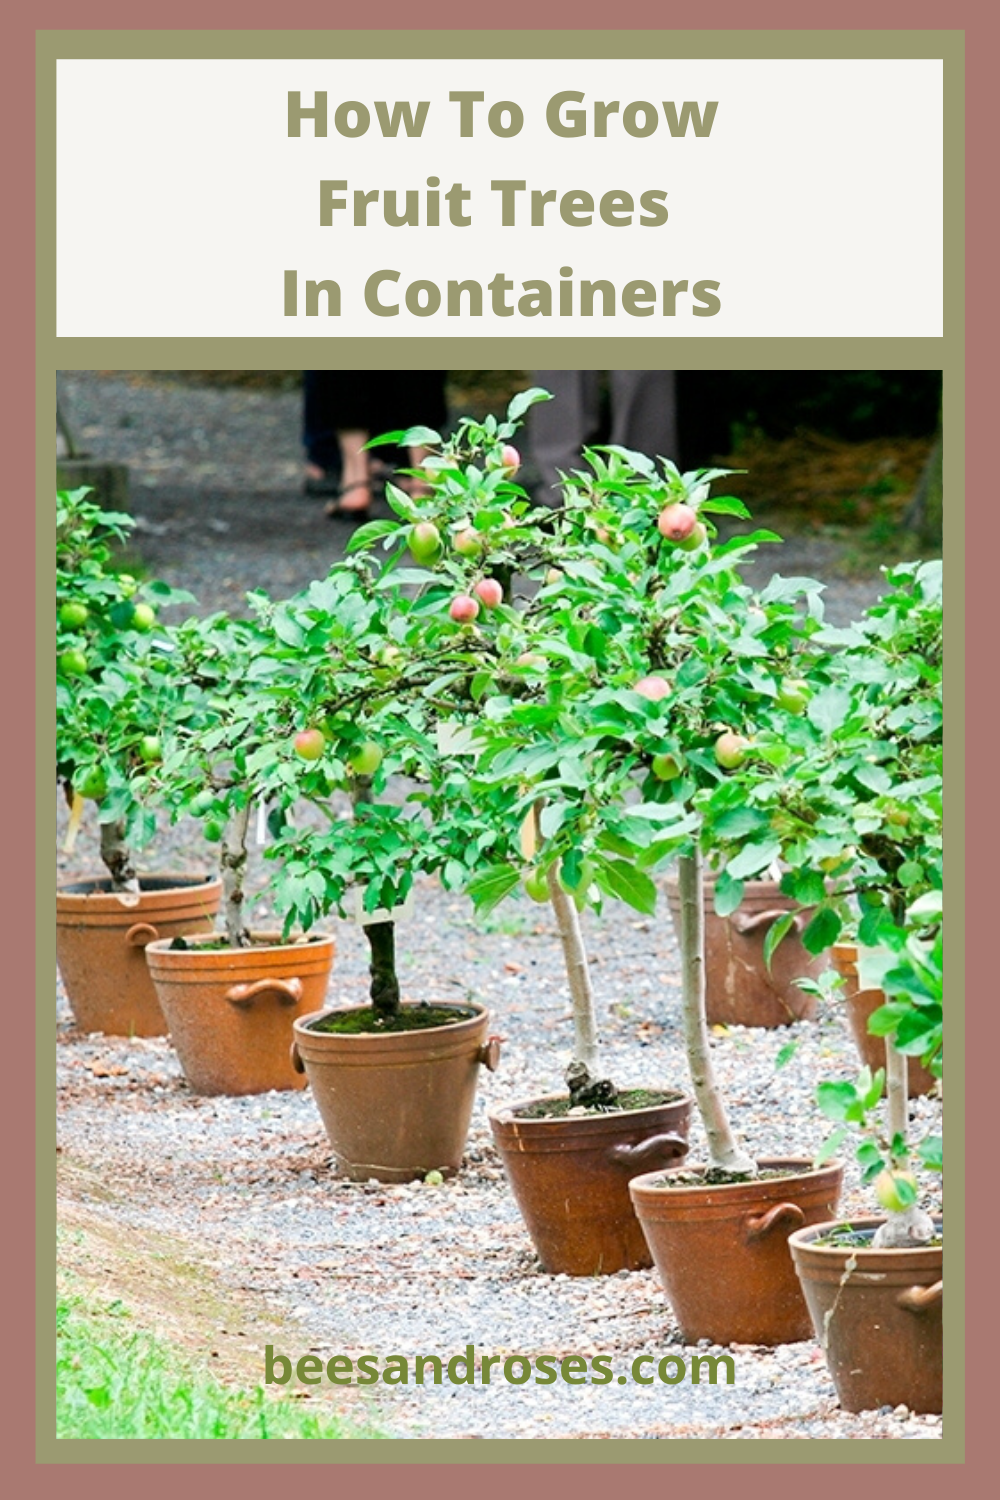 Tips And Tricks For Growing Fruit Trees In Containers Bees And Roses Fruit Trees In Containers Fruit Trees Planting Fruit Trees